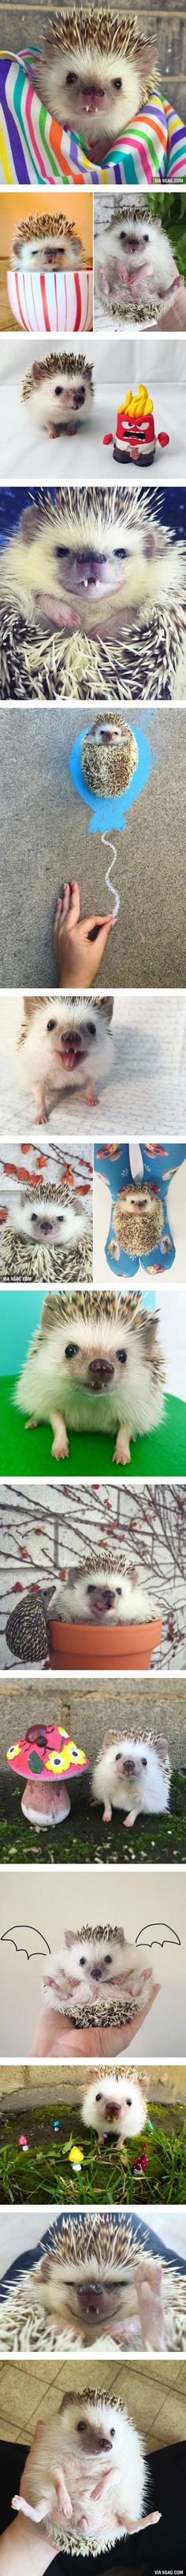 Meet Huff: The Vampire Hedgehog